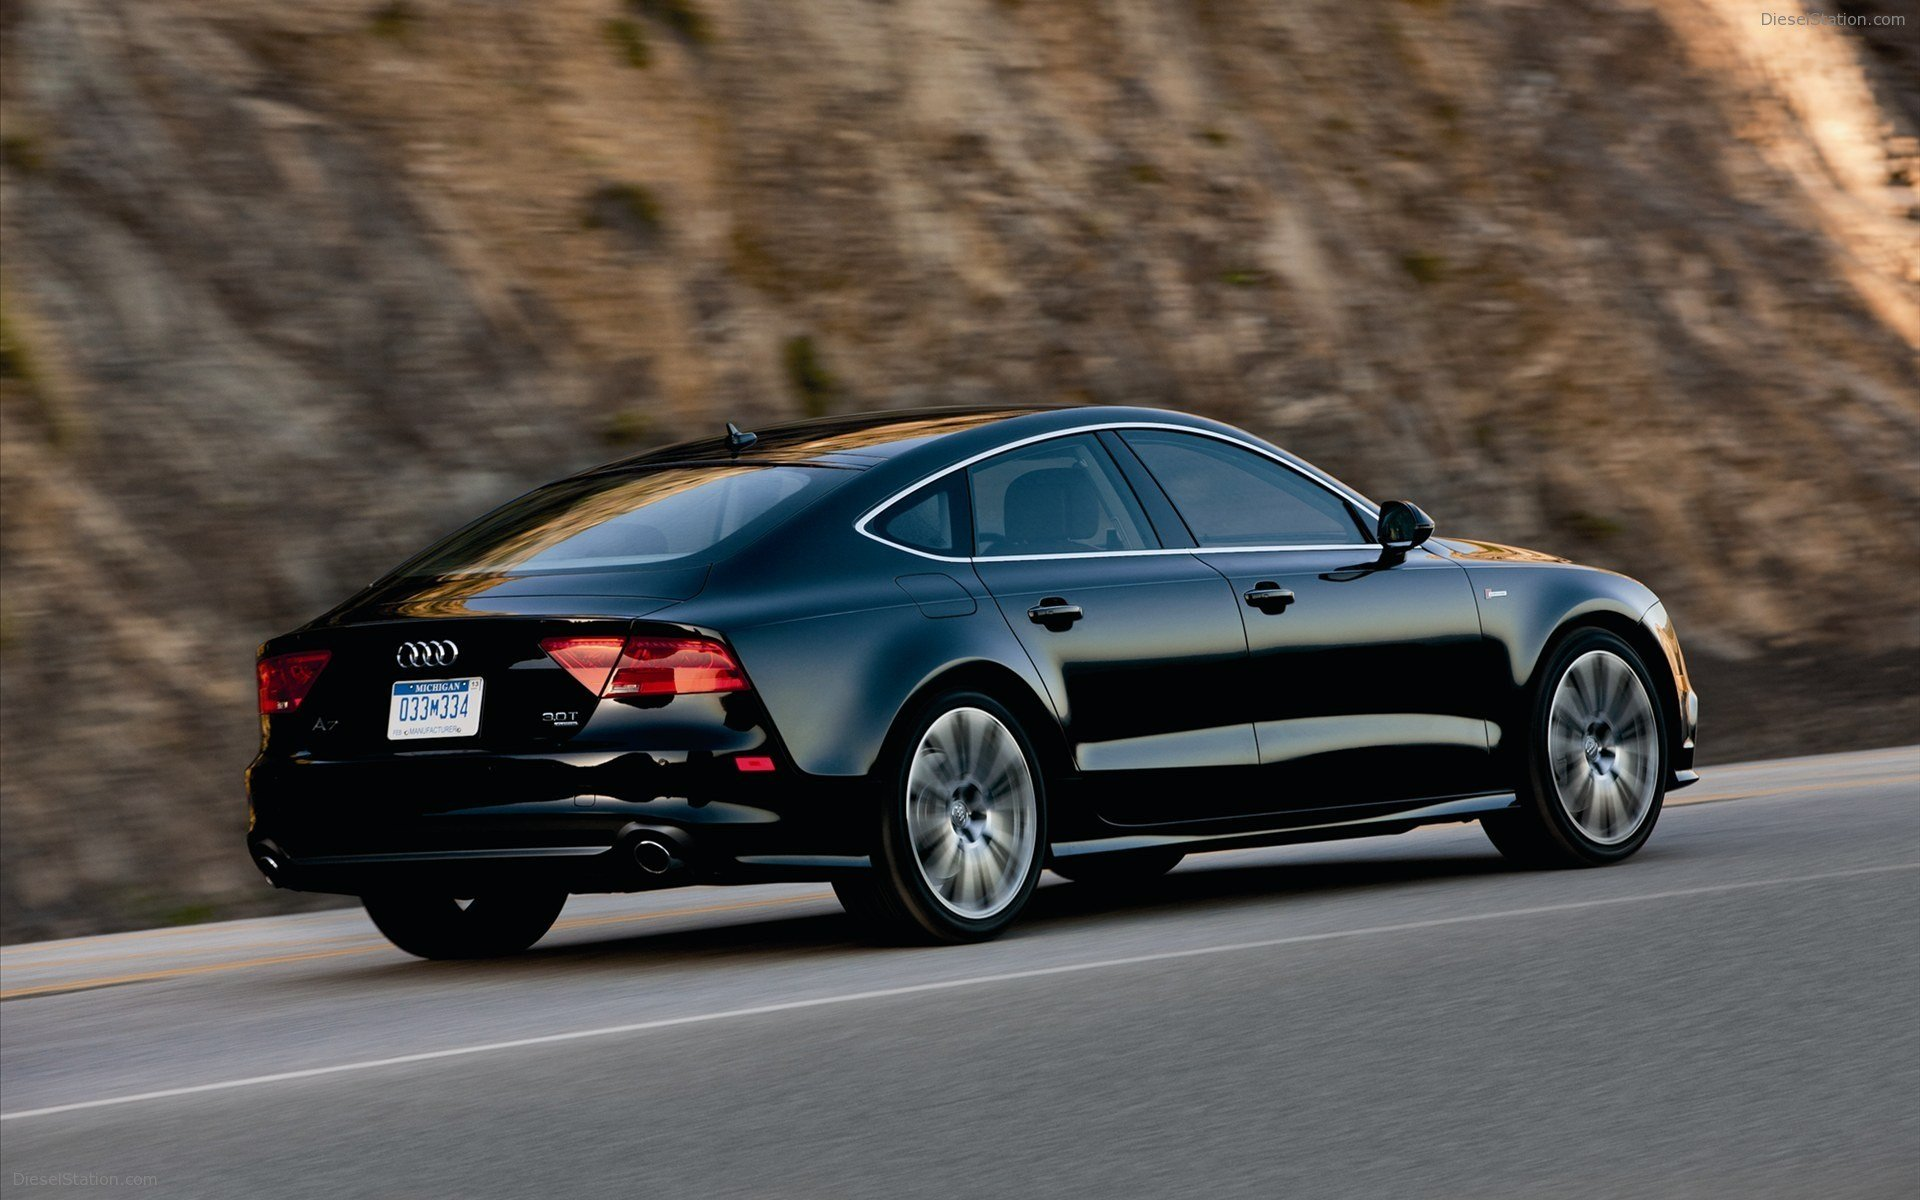 Latest Audi A7 2012 Widescreen Exotic Car Photo 17 Of 56 Free Download